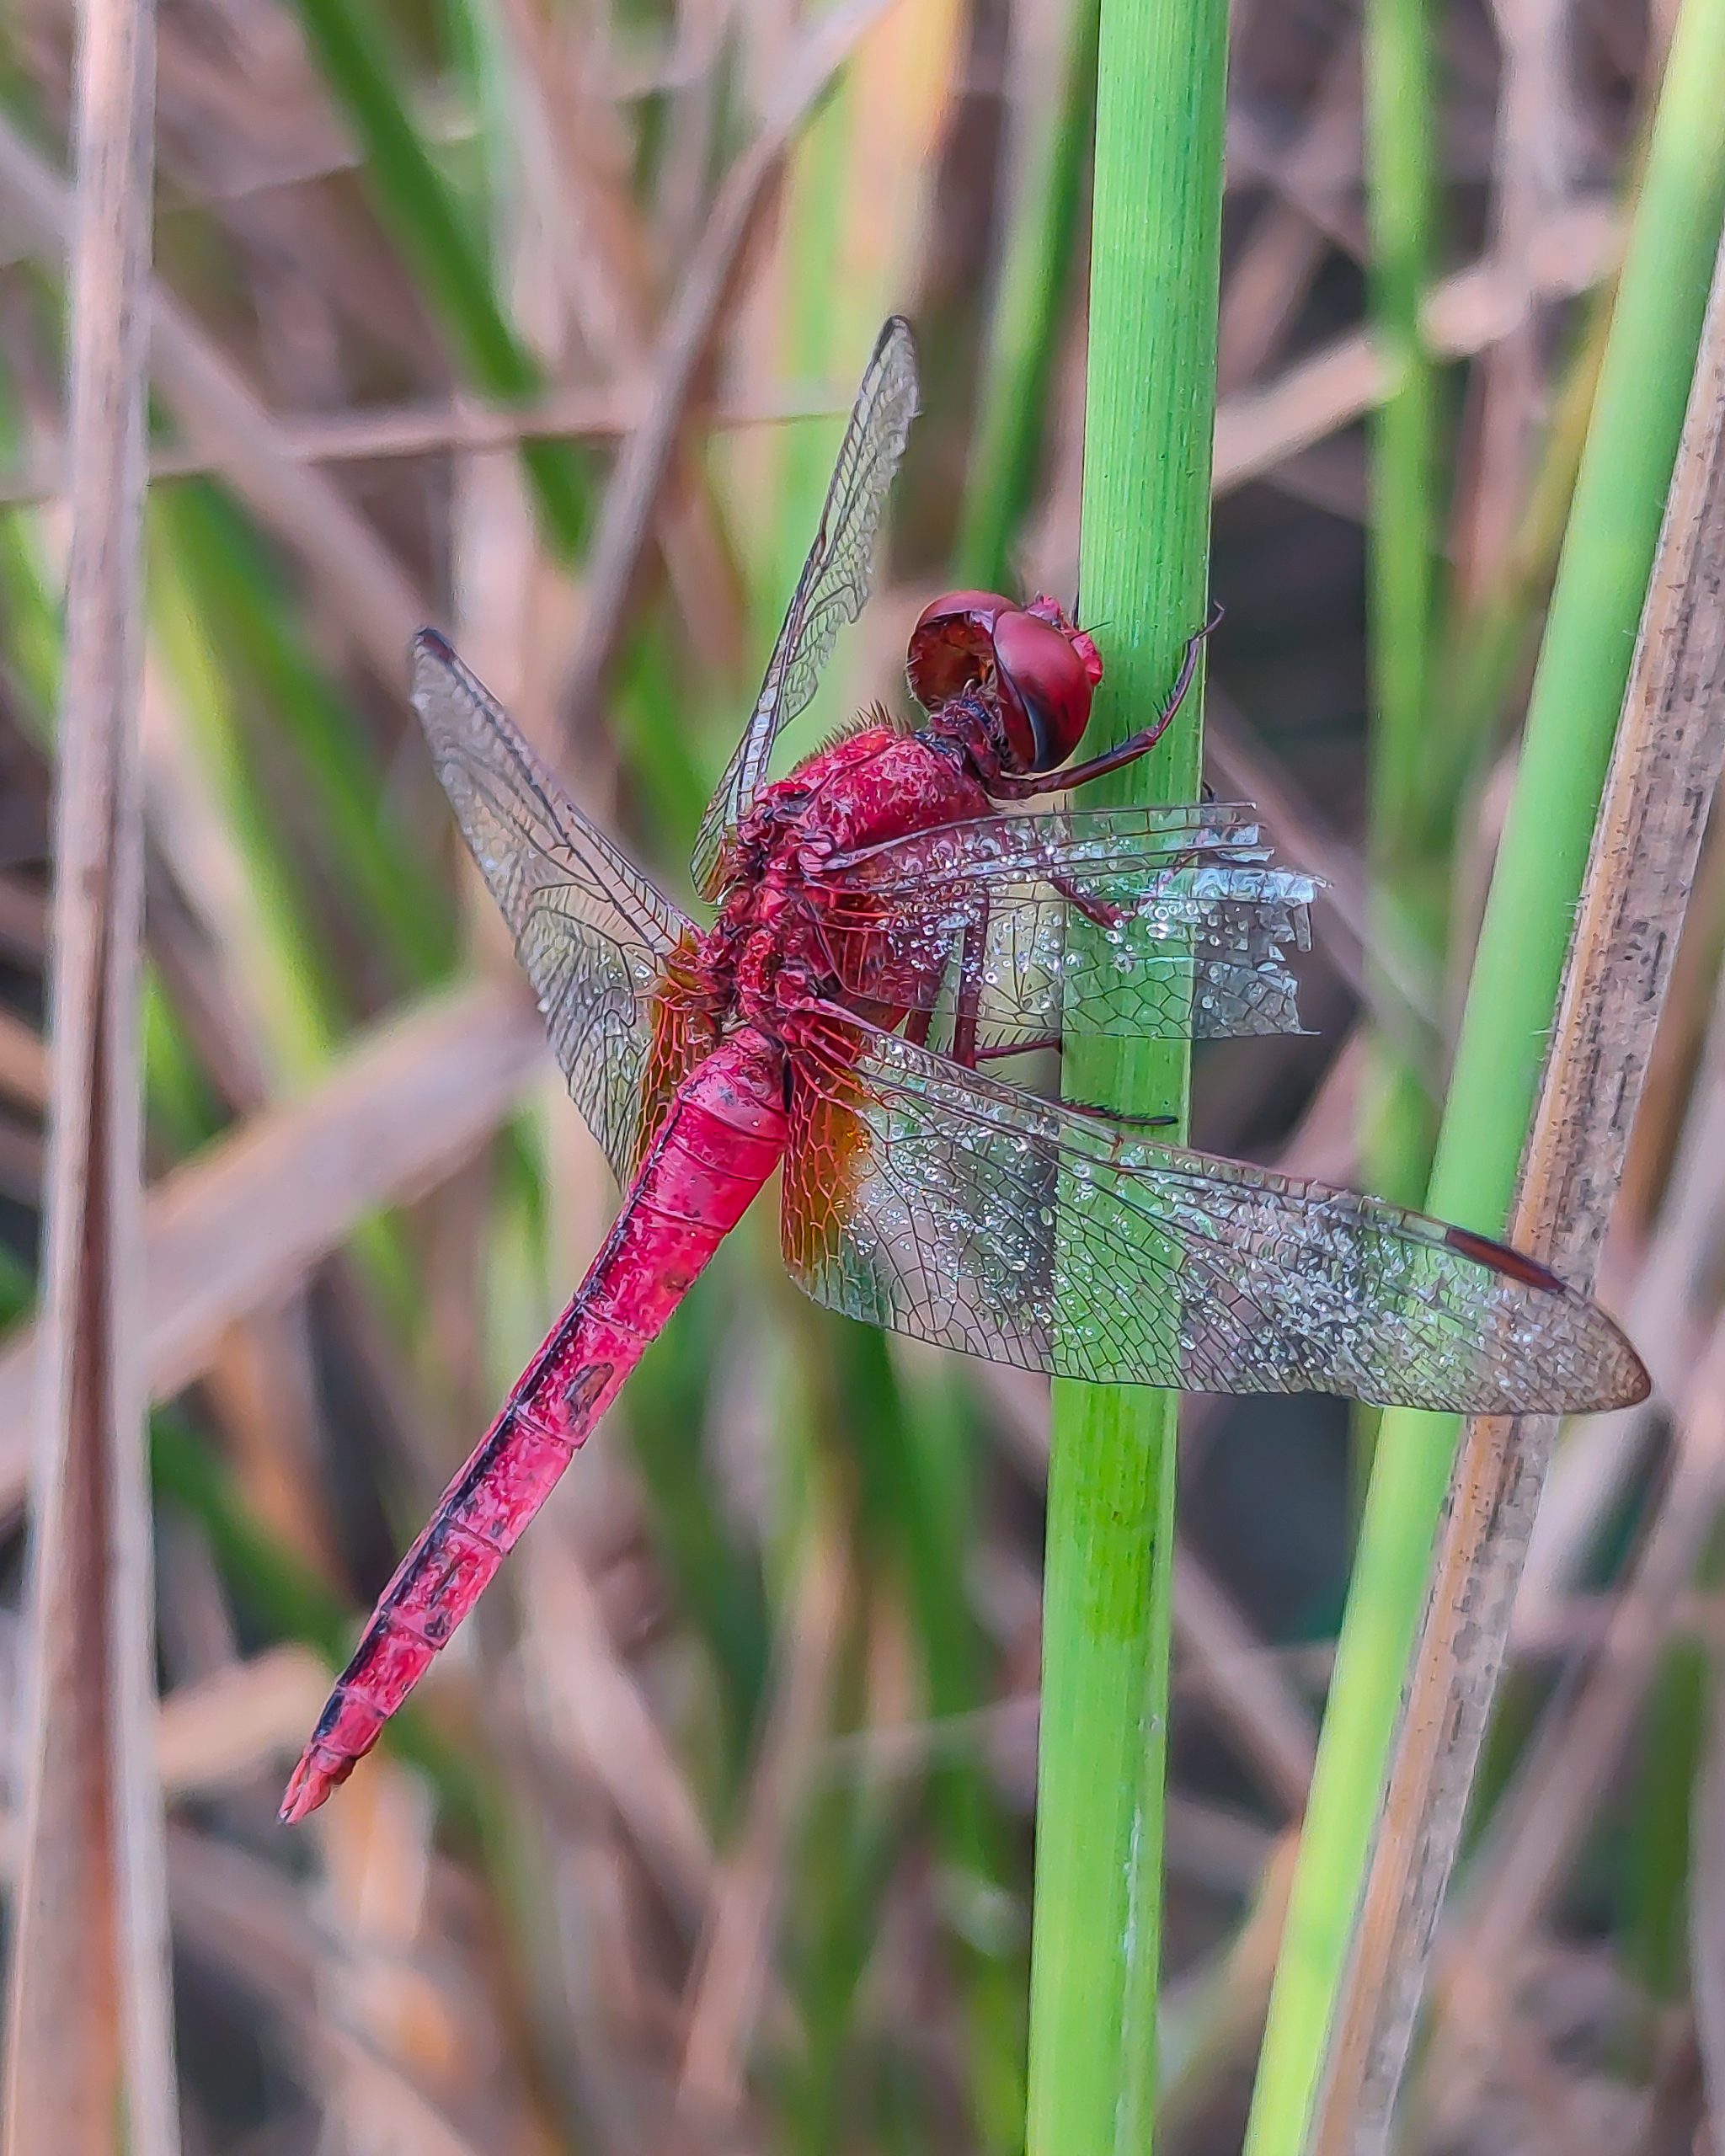 dragon fly on a stem